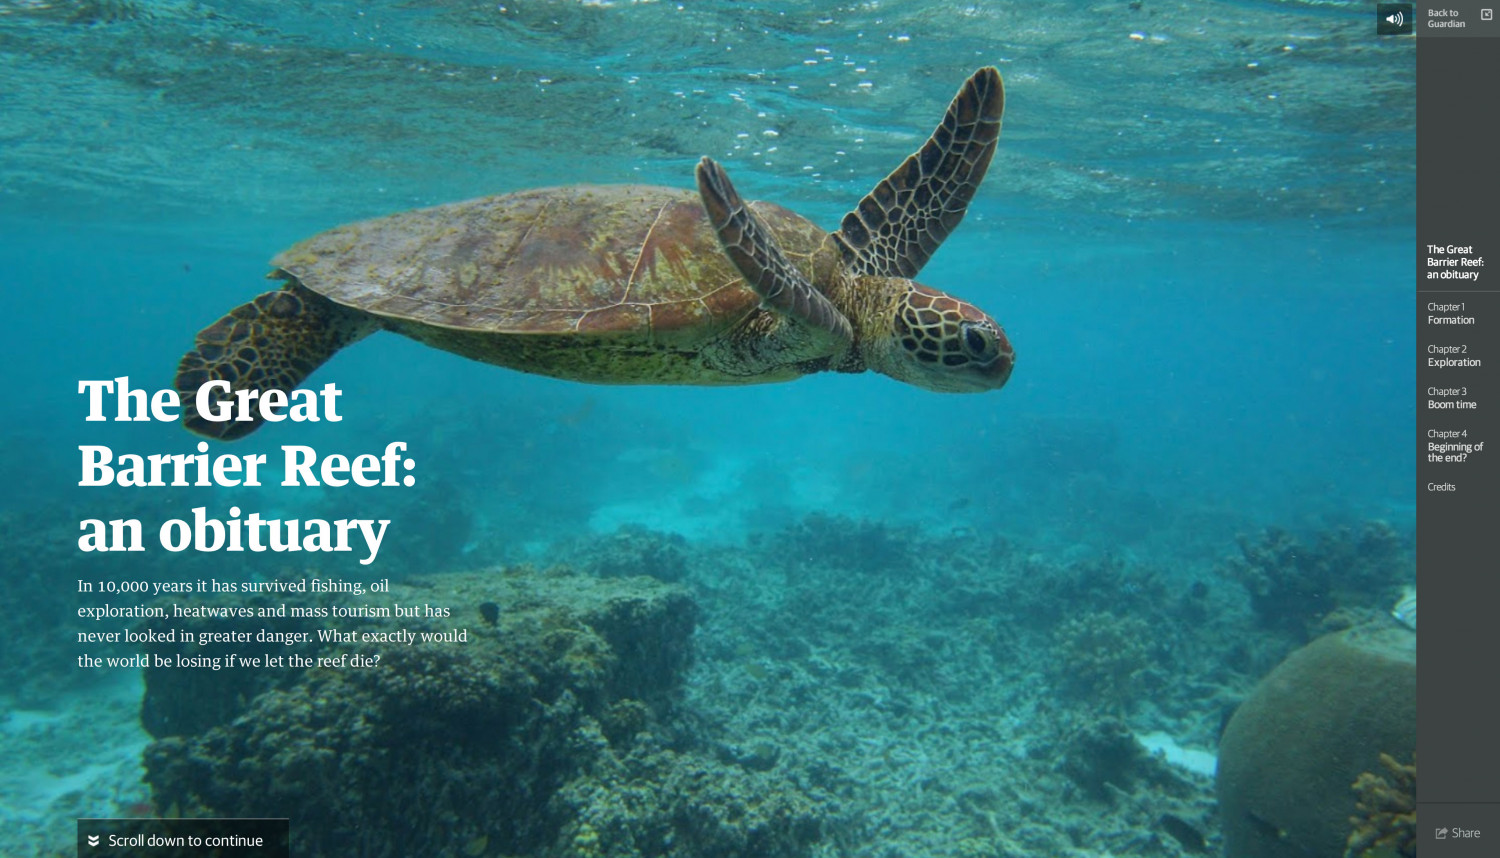 The Great Barrier Reef: An Obituary Infographic